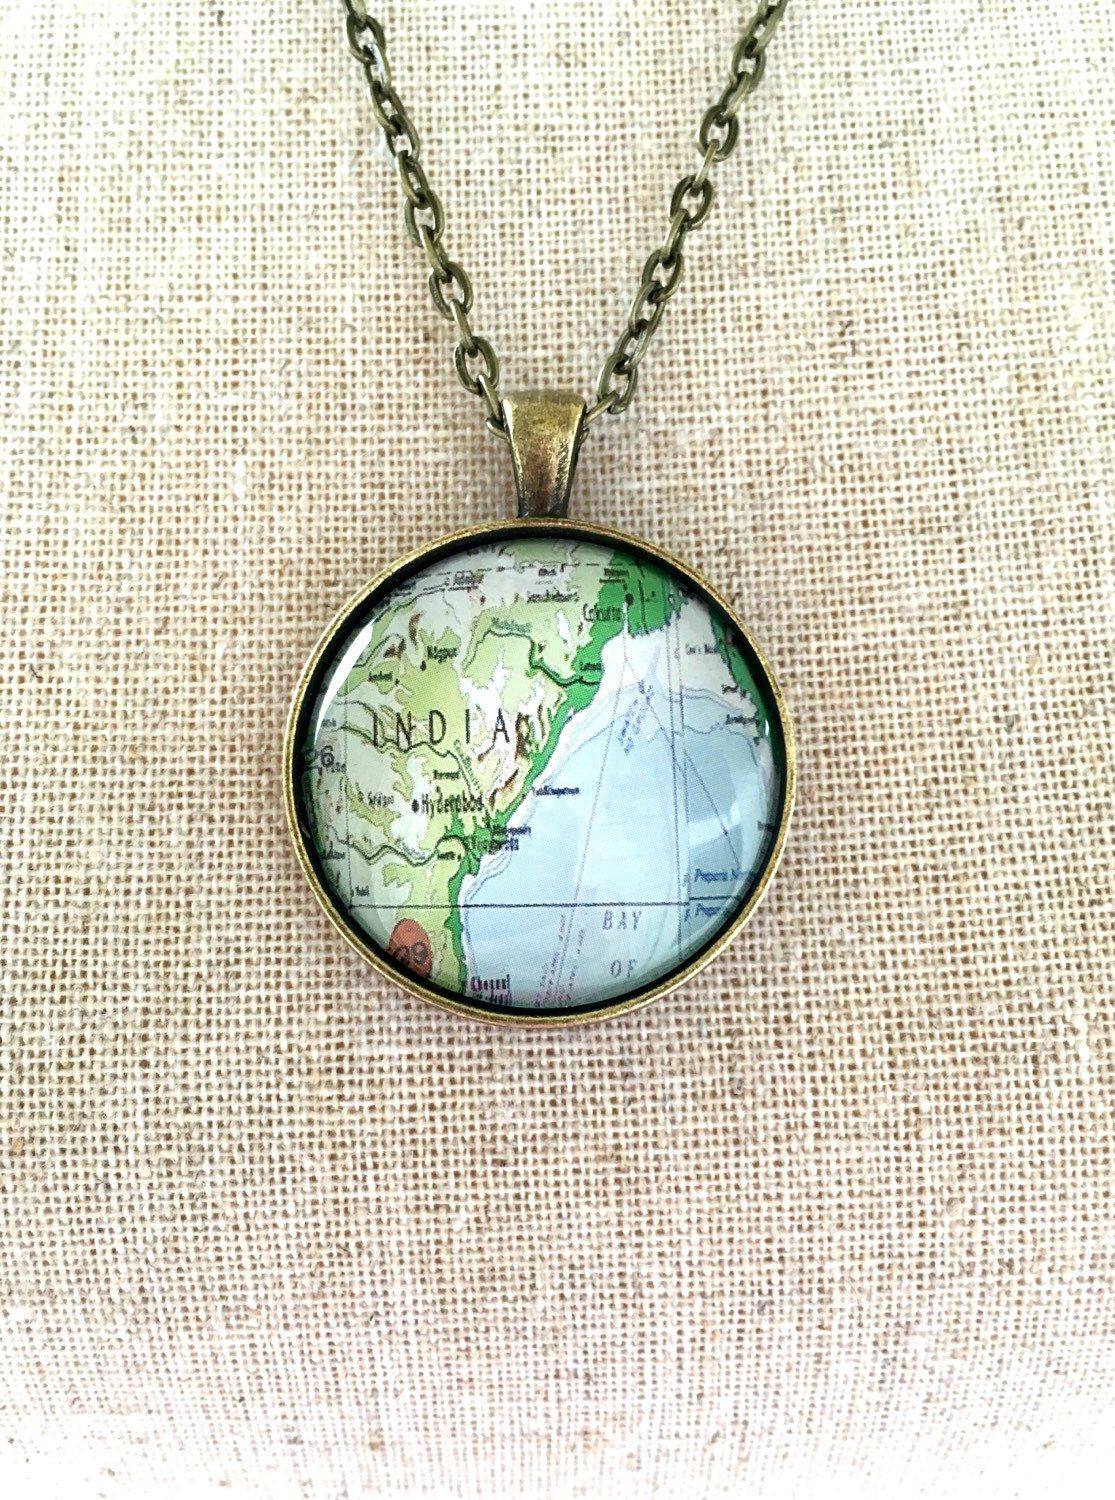 Travel necklace india travel world map wanderlust unique gift for travel necklace india travel world map wanderlust unique gift for traveler globe by industrialwhimsy on etsy gumiabroncs Gallery